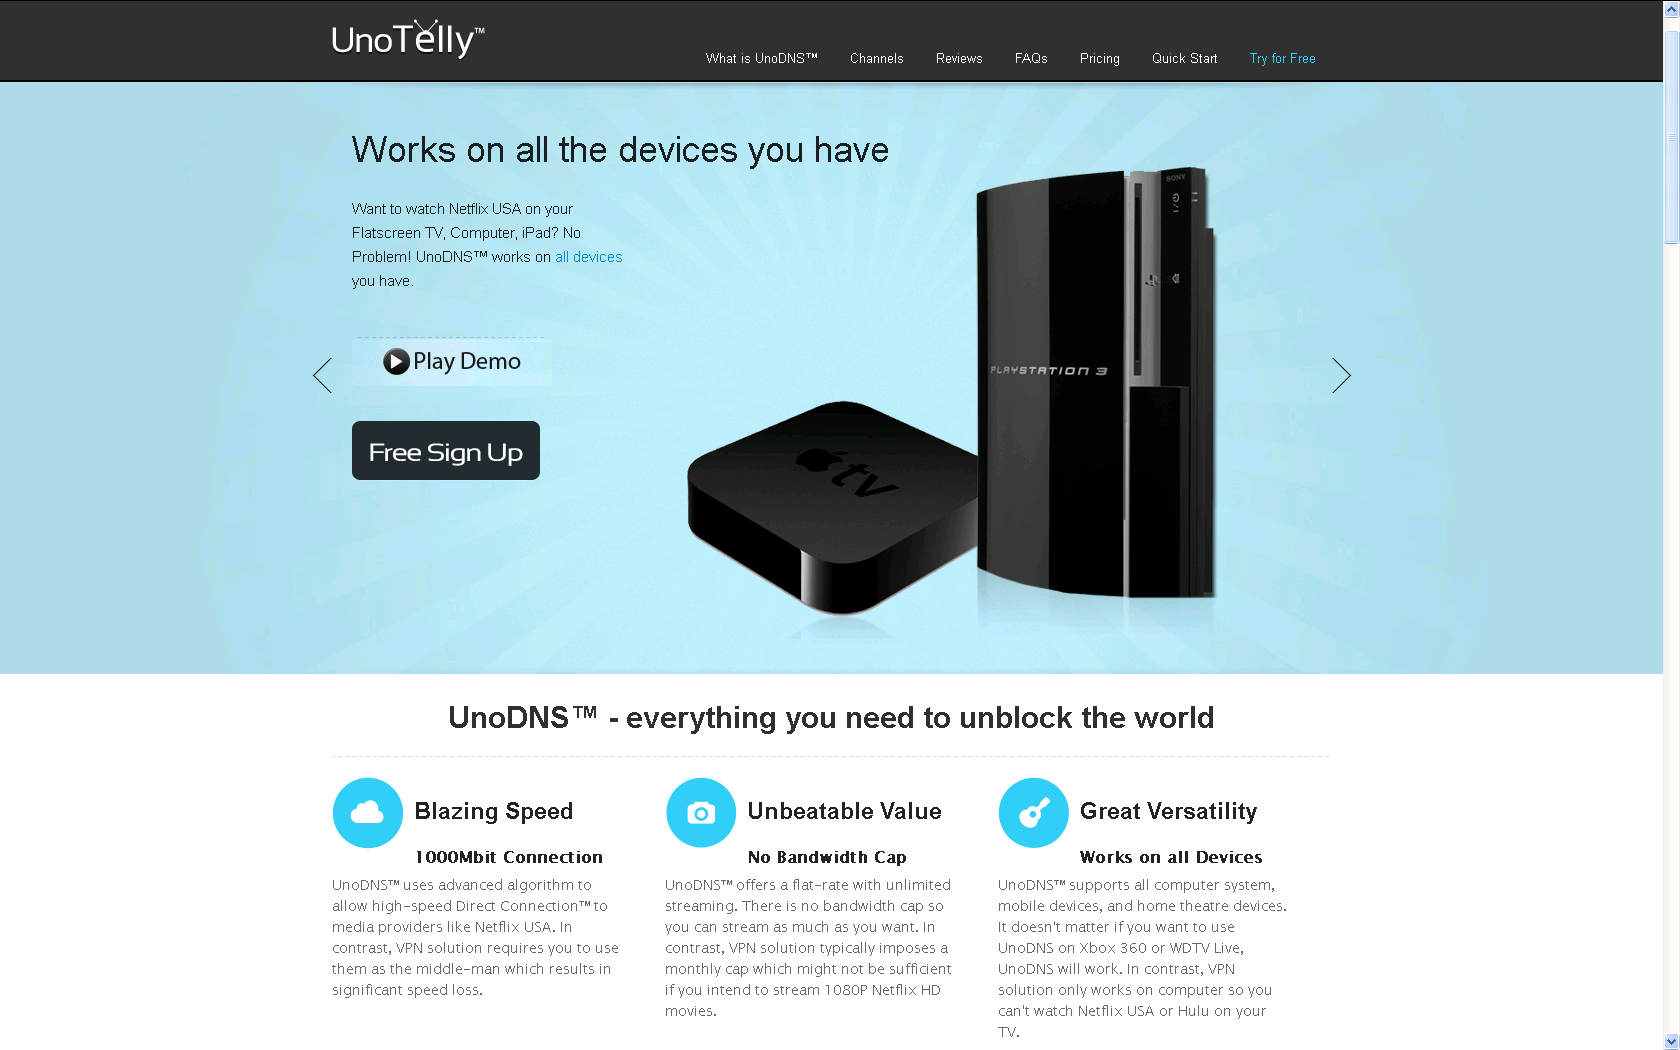 UnoDNS from UnoTelly Review